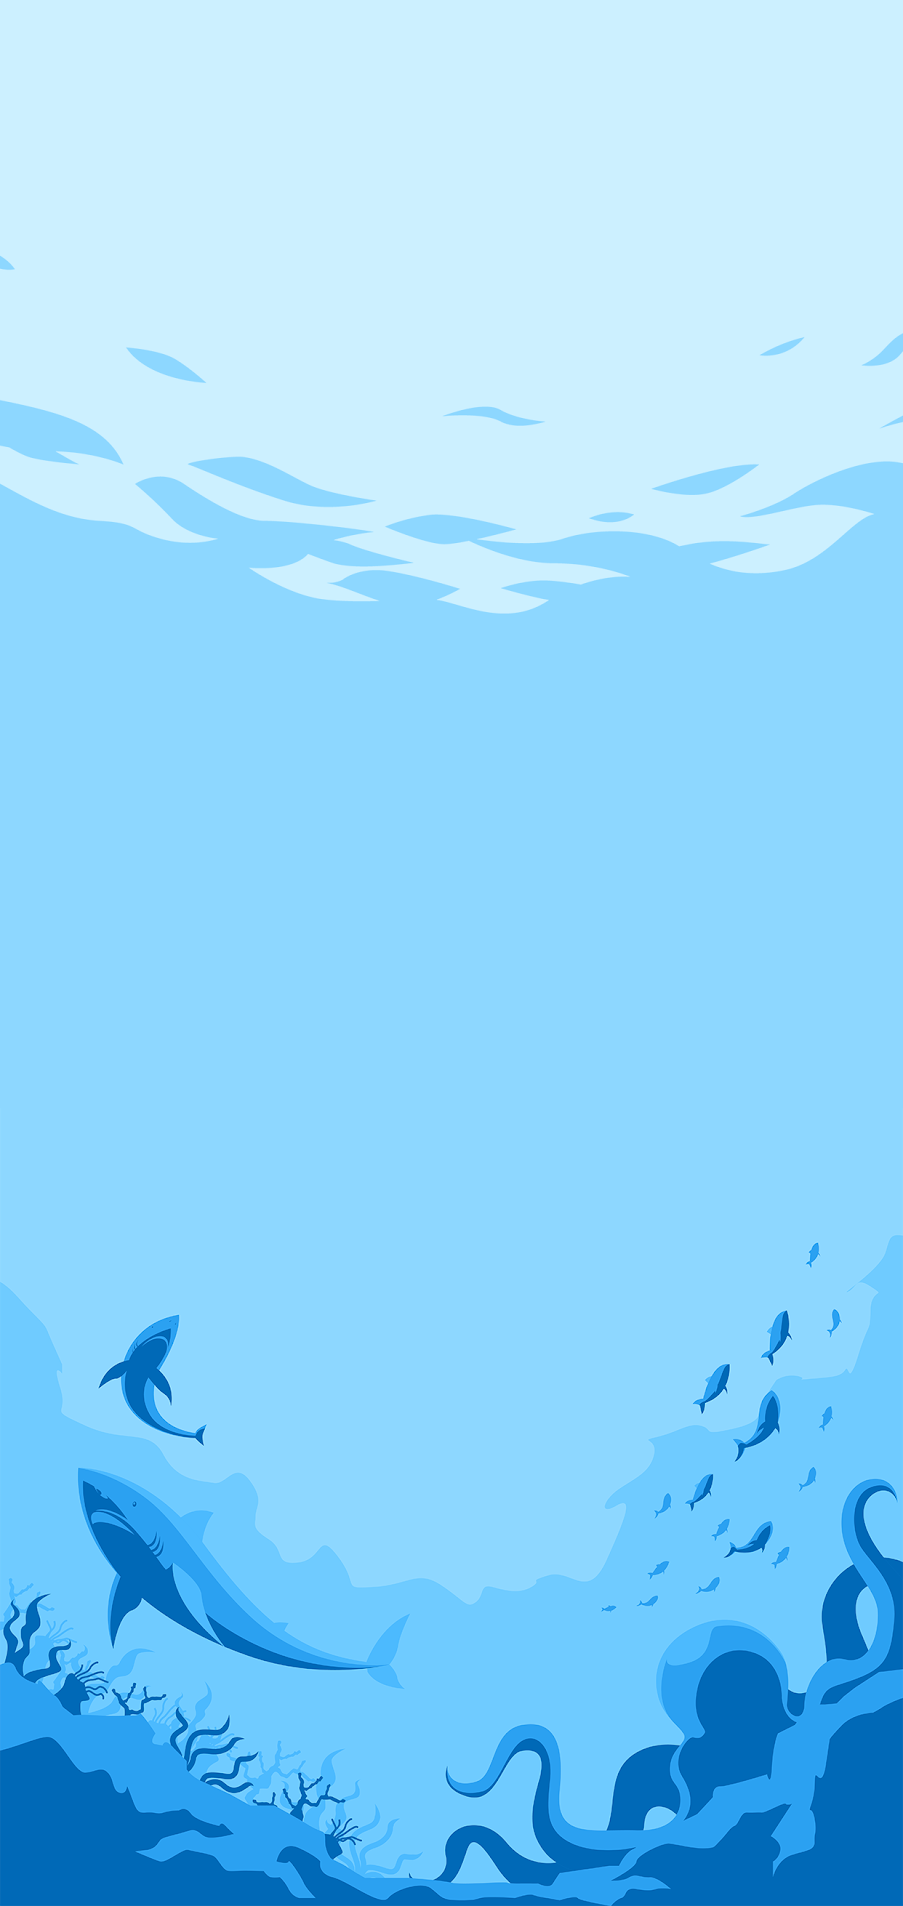 sea fishes ocean blue wallpaper for mobile